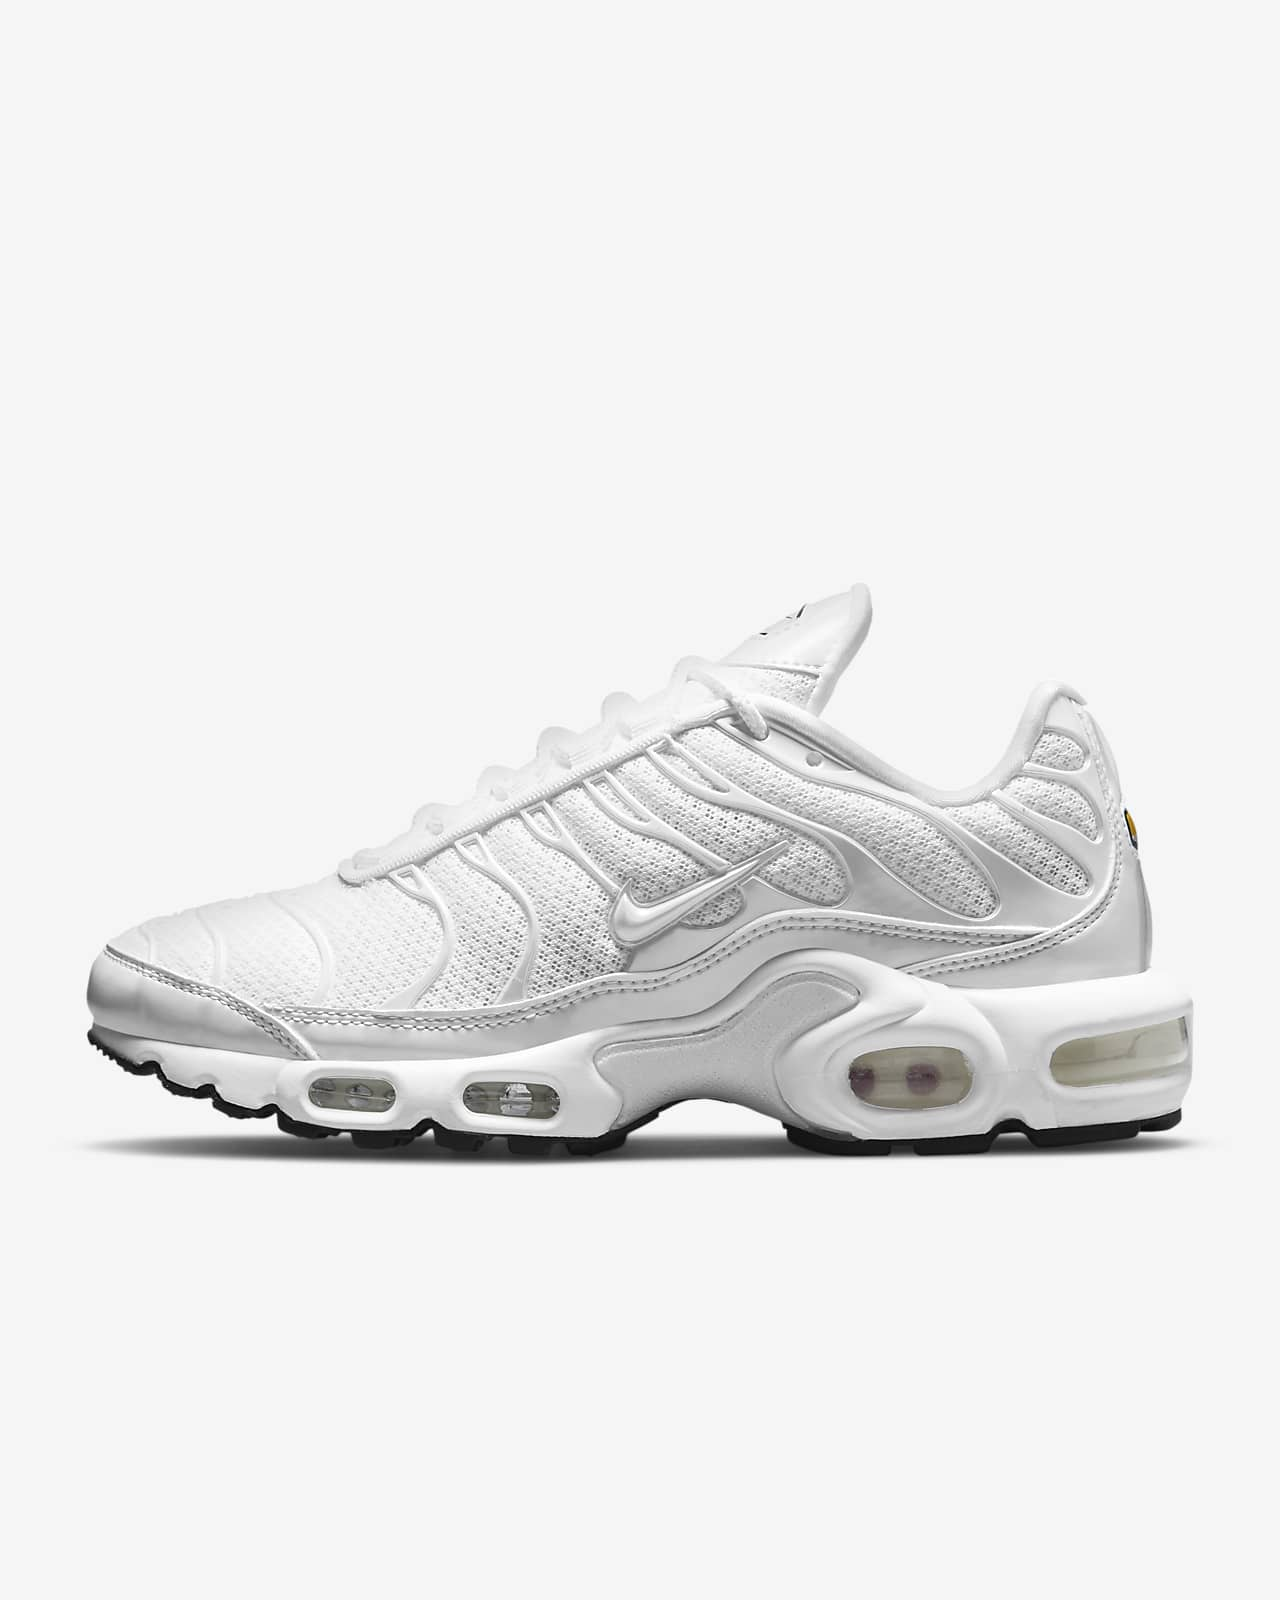 Nike Air Max Plus Premium Damenschuh